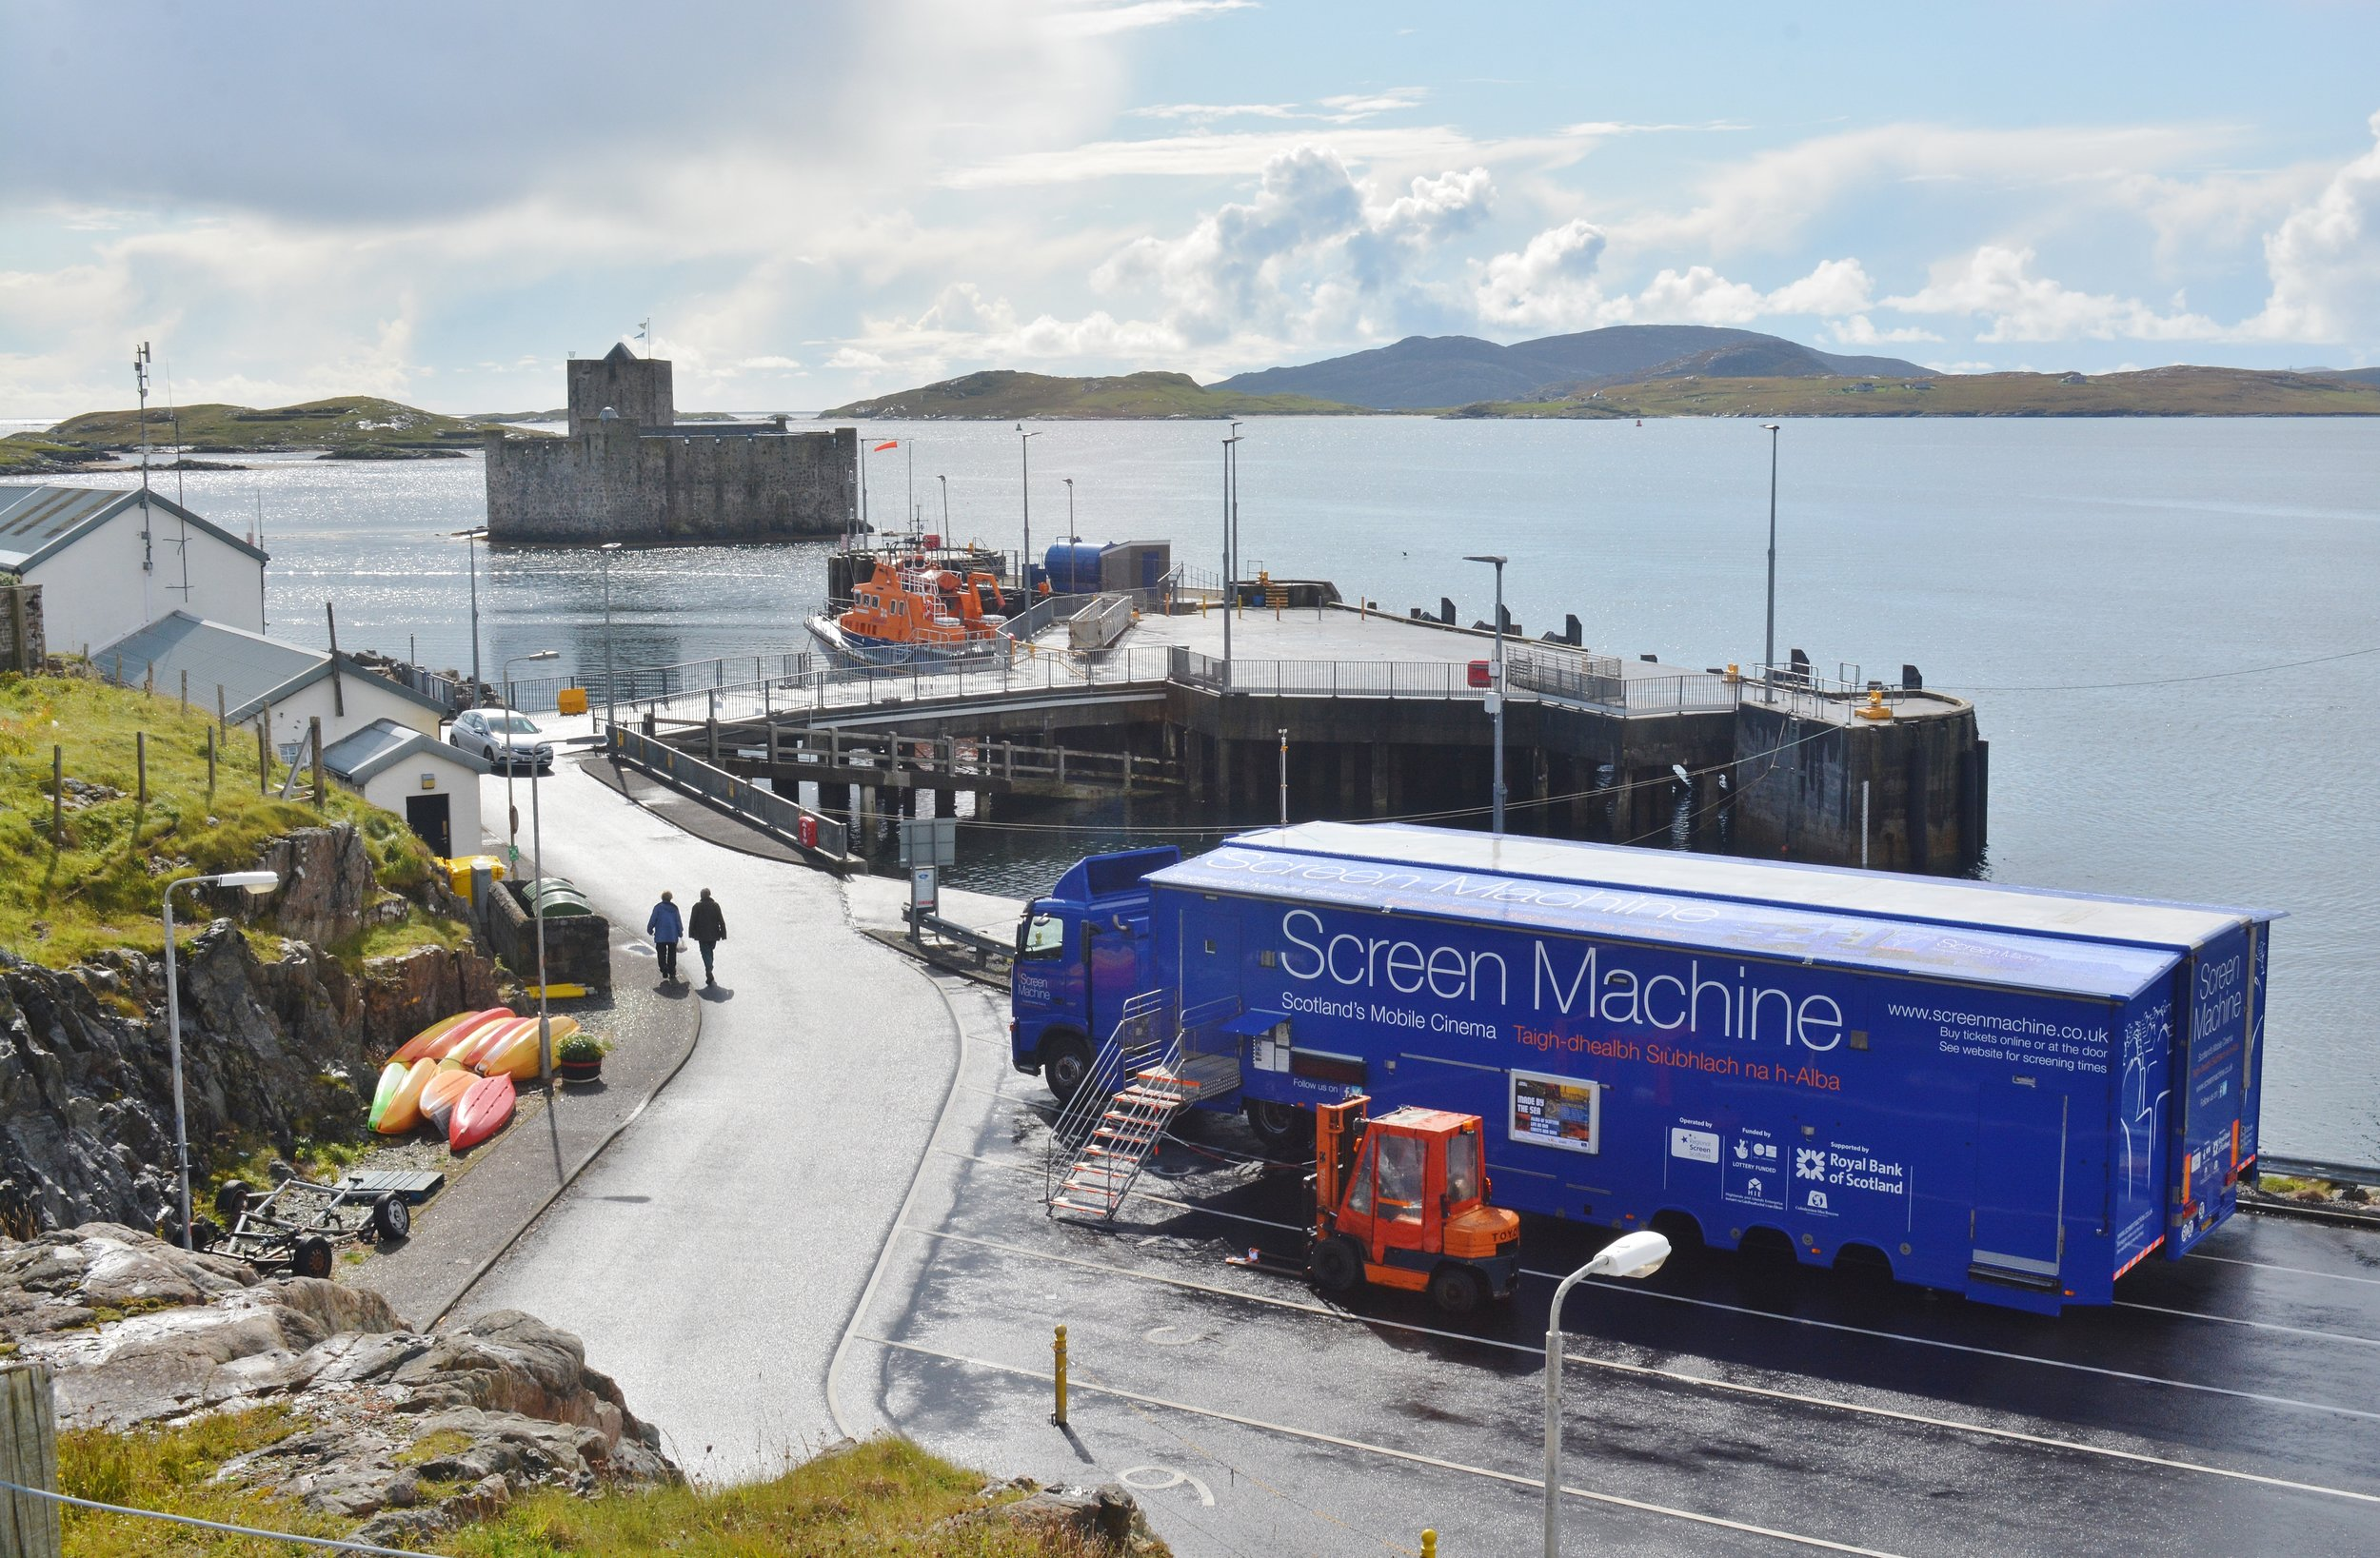 Castlebay, Barra - Date: Saturday 8 September 2018Venues: Screen Machine + Bùth BharraighFilmmaker Ed Webb-Ingall and Invisible Dust director Alice Sharp were in attendance for a screening of the Shore films in mobile cinema venue Screen Machine. Throughout the day, Mairi McFadyen of Local Voices was based in Bùth Bharraigh - the Community Local Produce Hub for the islands of Barra and Vatersay - gathering thoughts and reactions around MPAs at the Shore pop-up stand. Image: Rosie Schneider